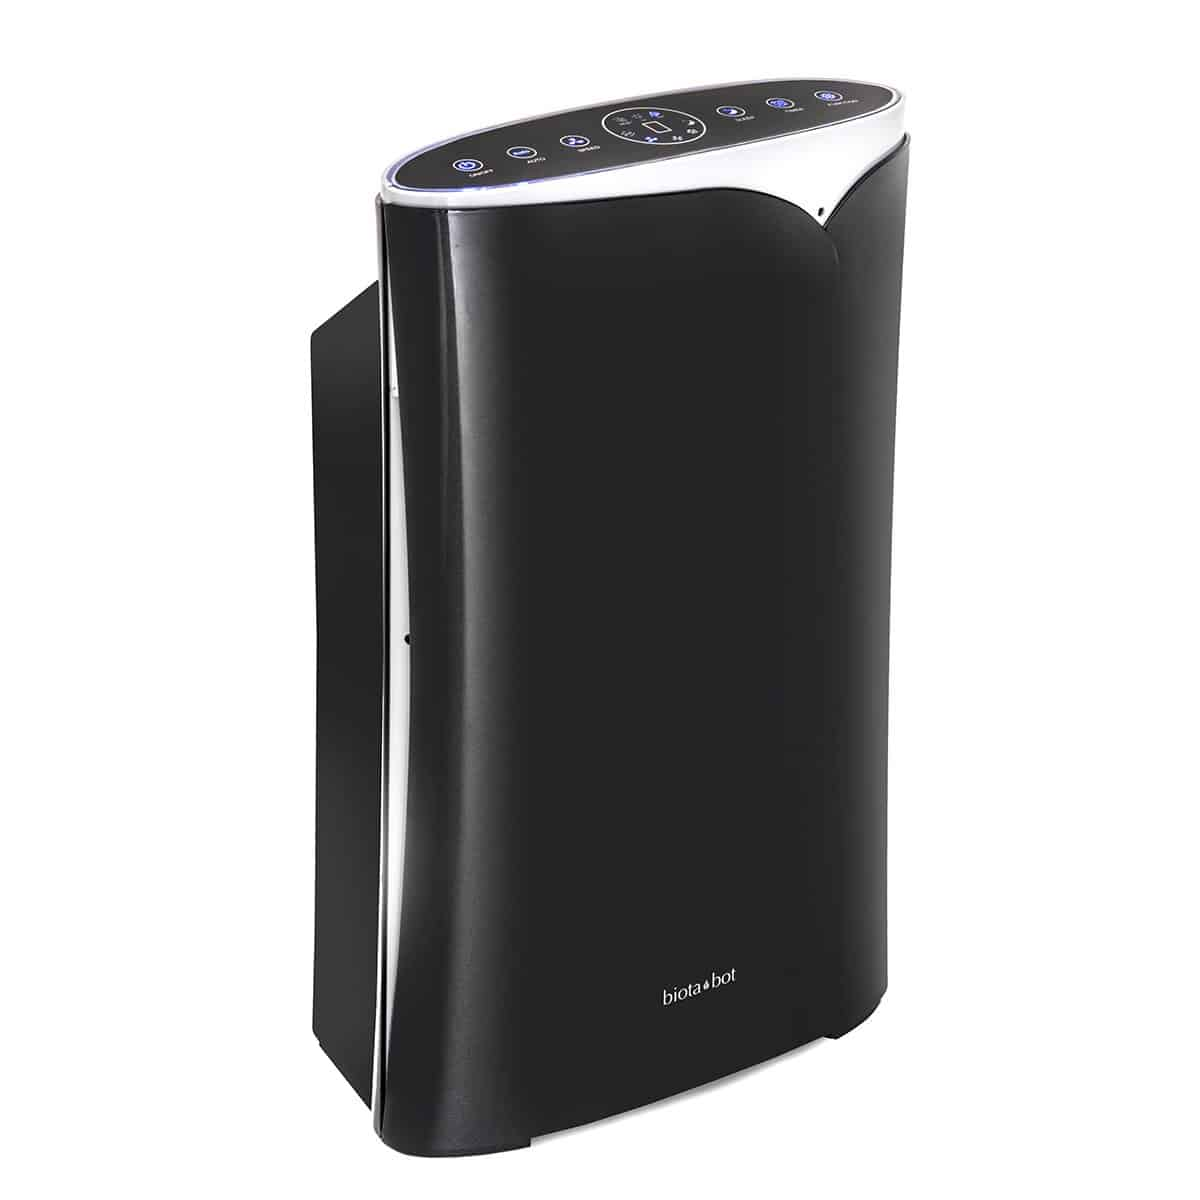 Best Air Purifier for Asthma Relief Buying Guide